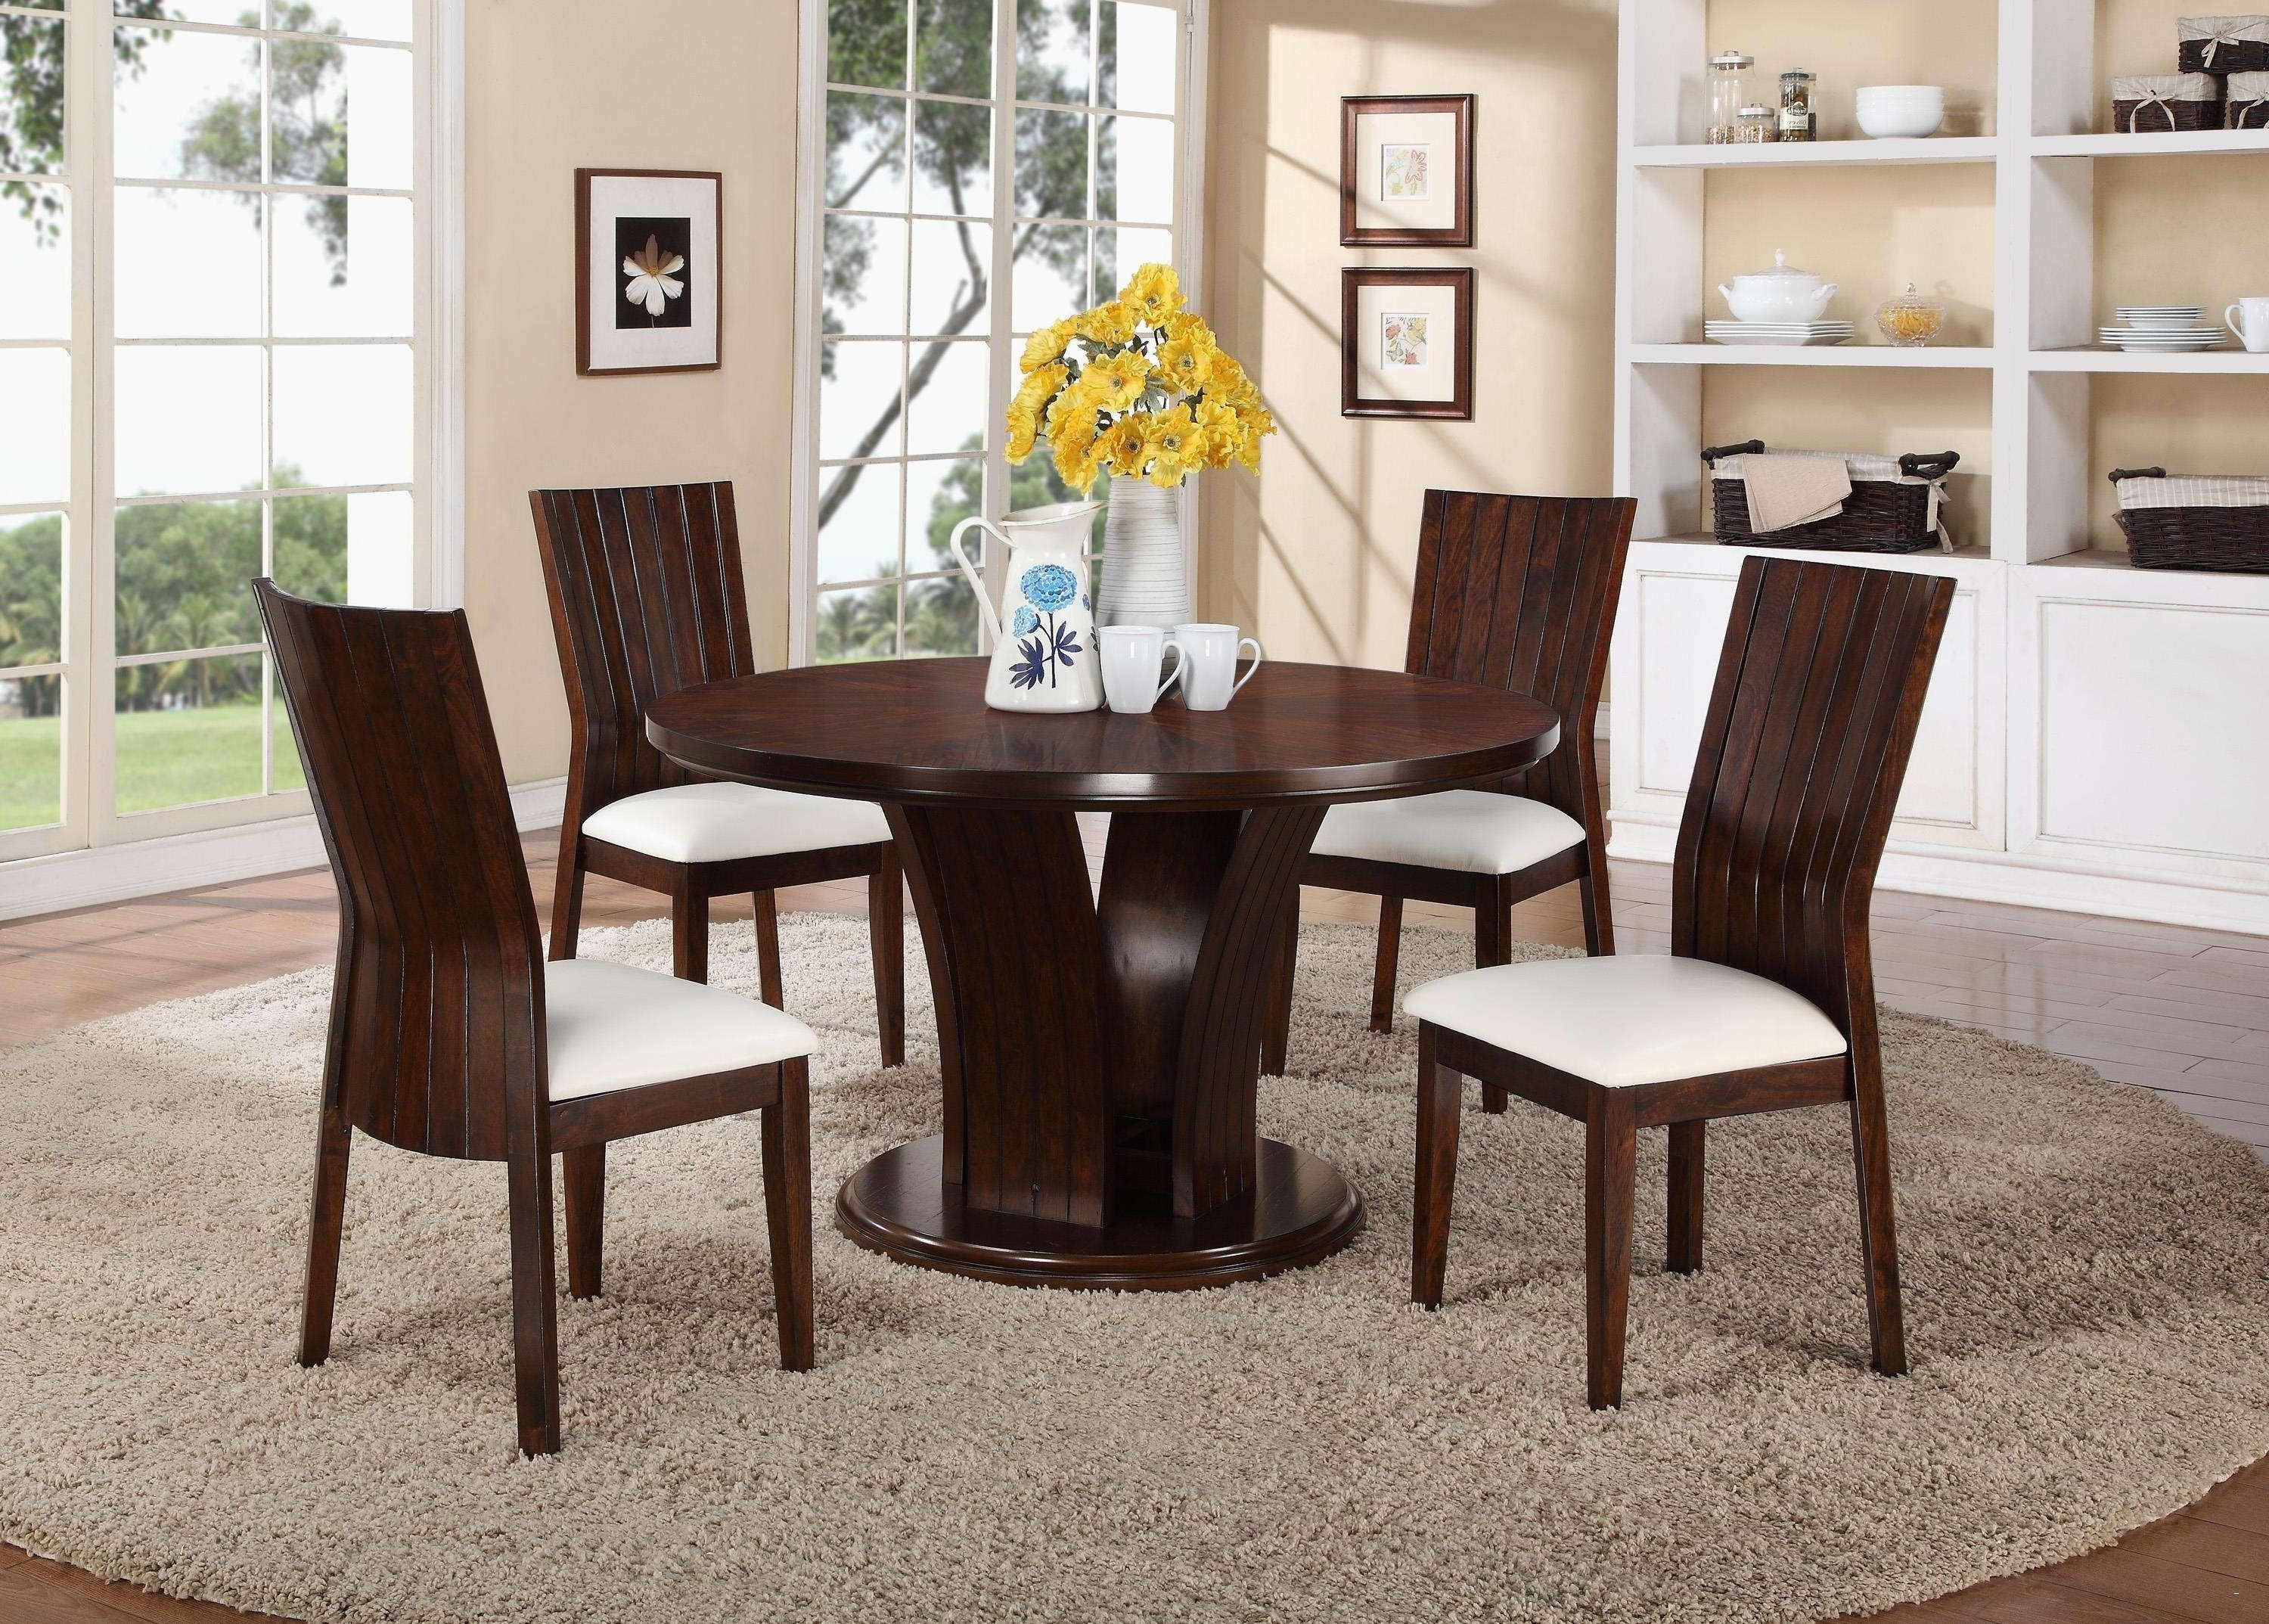 Patterson 6 Piece Dining Sets In Best And Newest Elegant Amish Dining Room Tables At Amish Outdoor Furniture Fresh Od (Gallery 22 of 25)